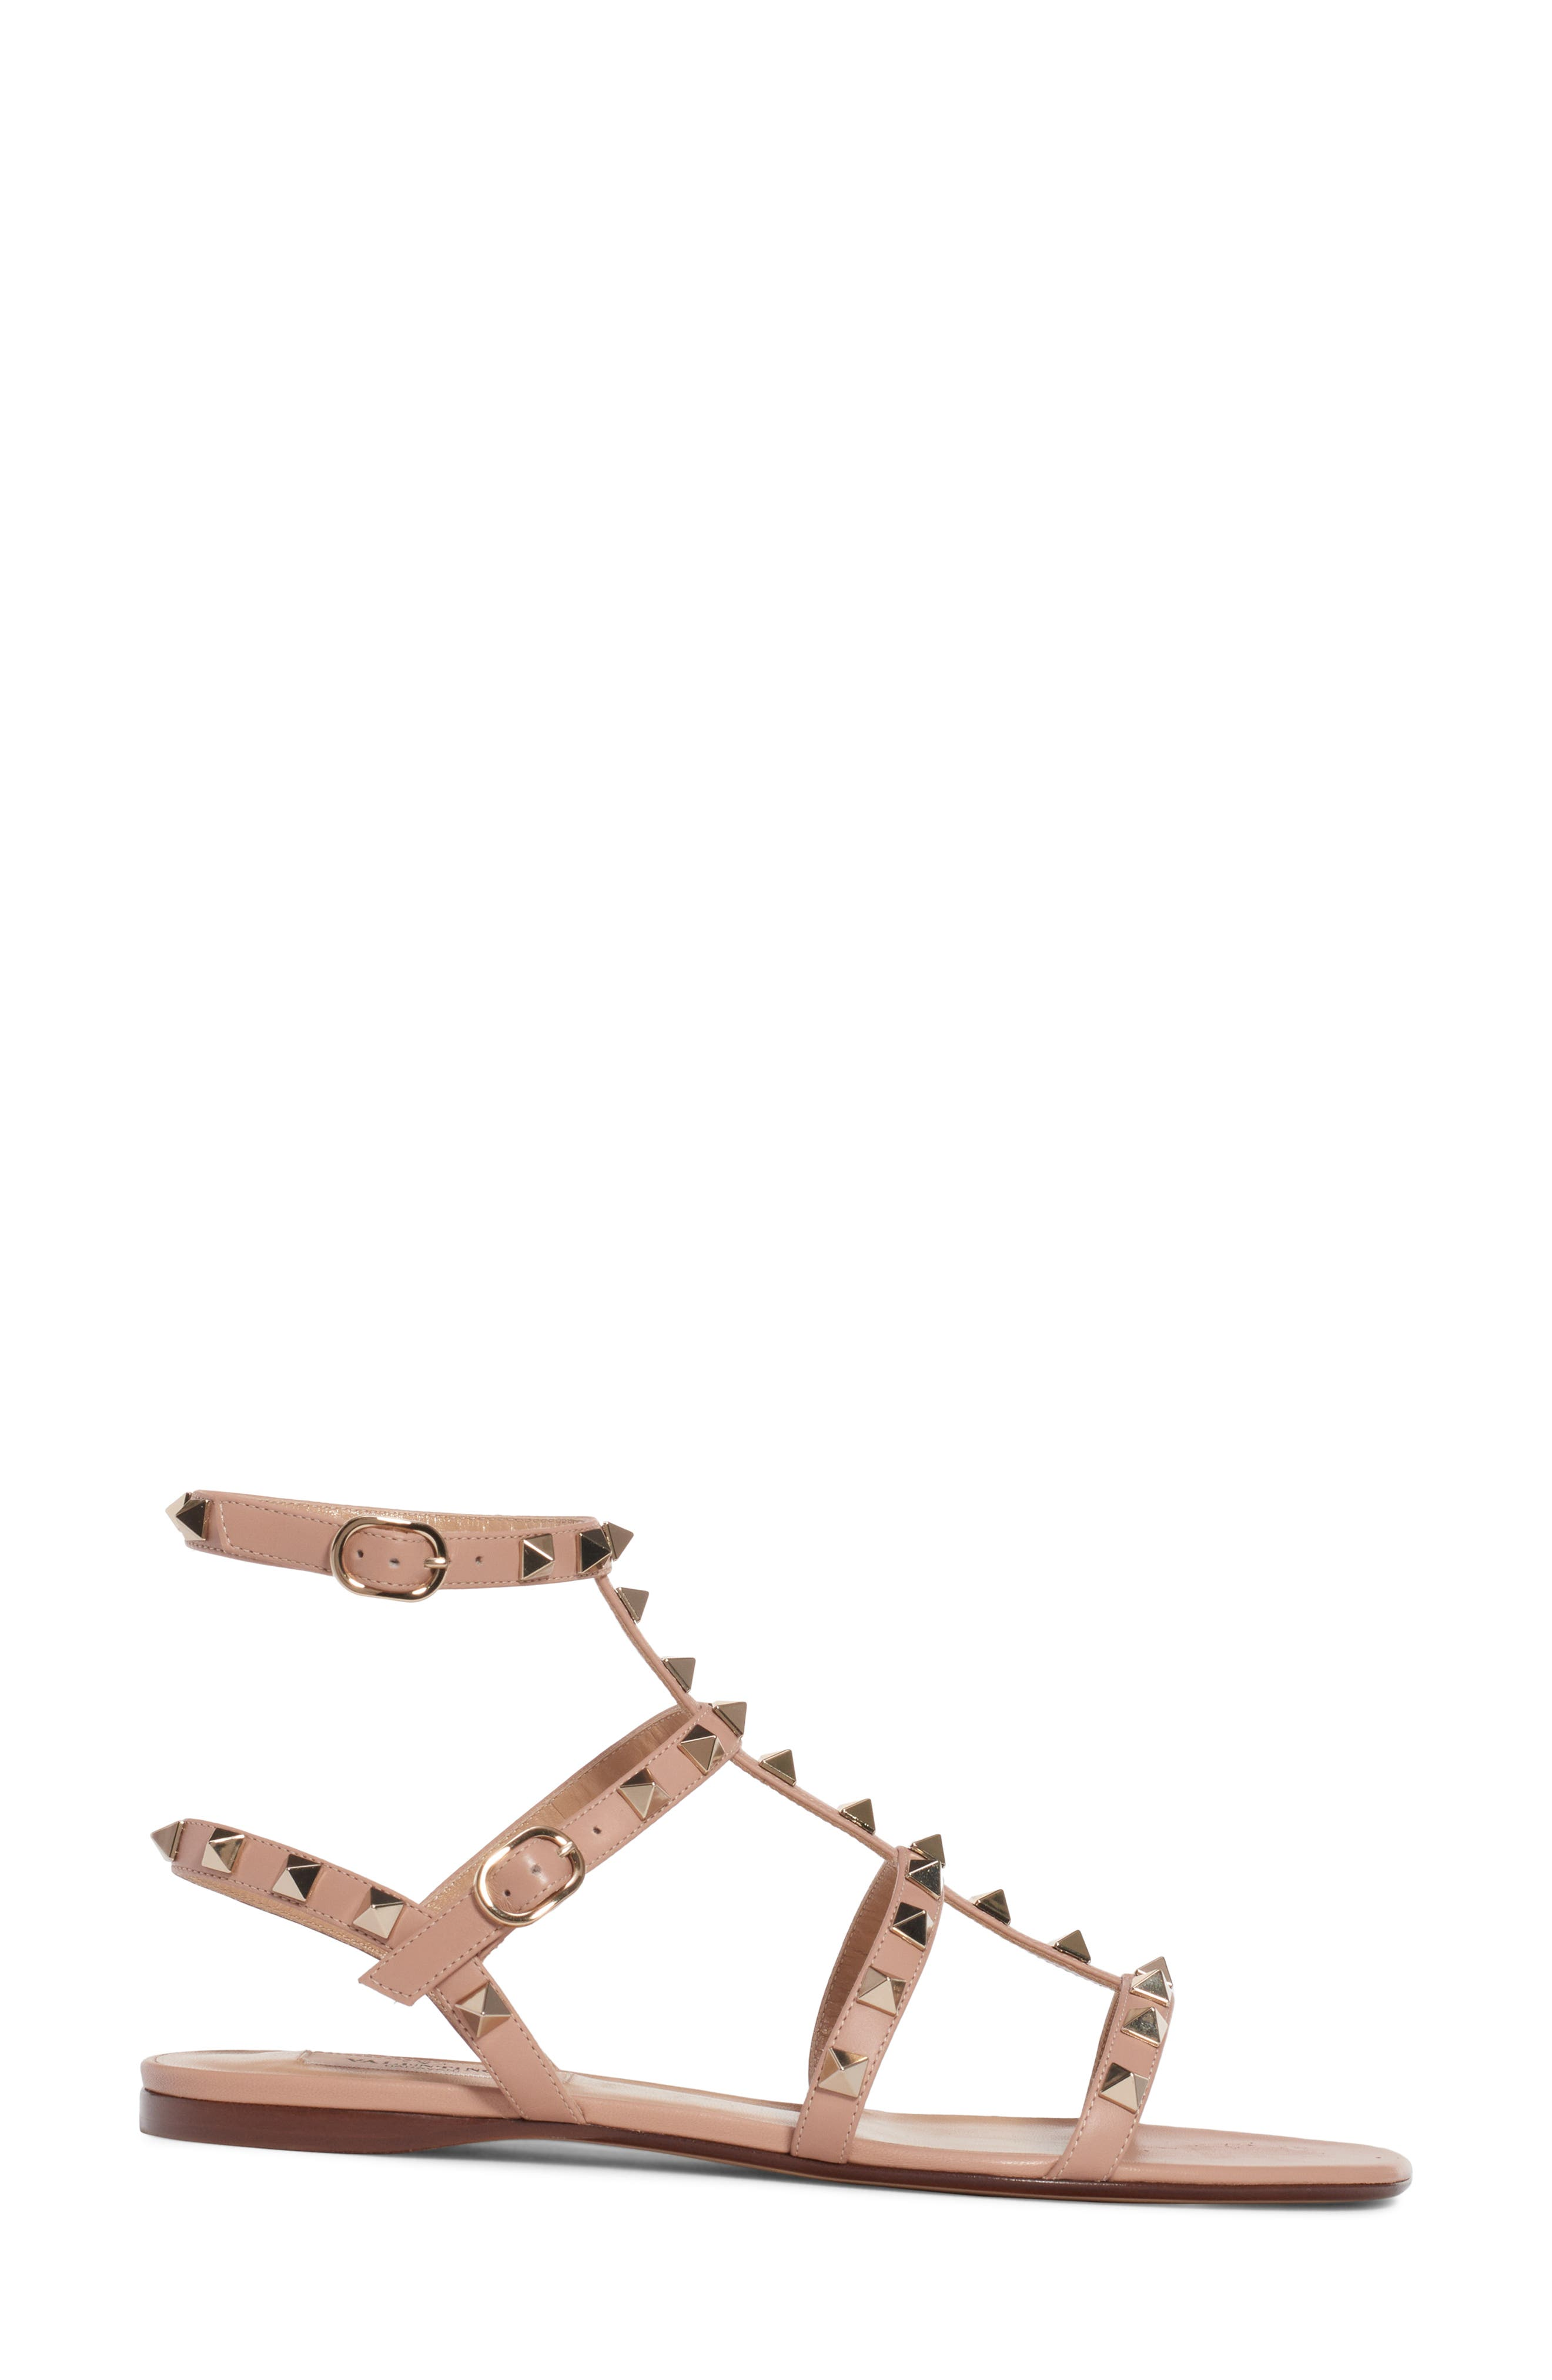 Rockstud Cage Sandal,                             Alternate thumbnail 3, color,                             ROSE BEIGE